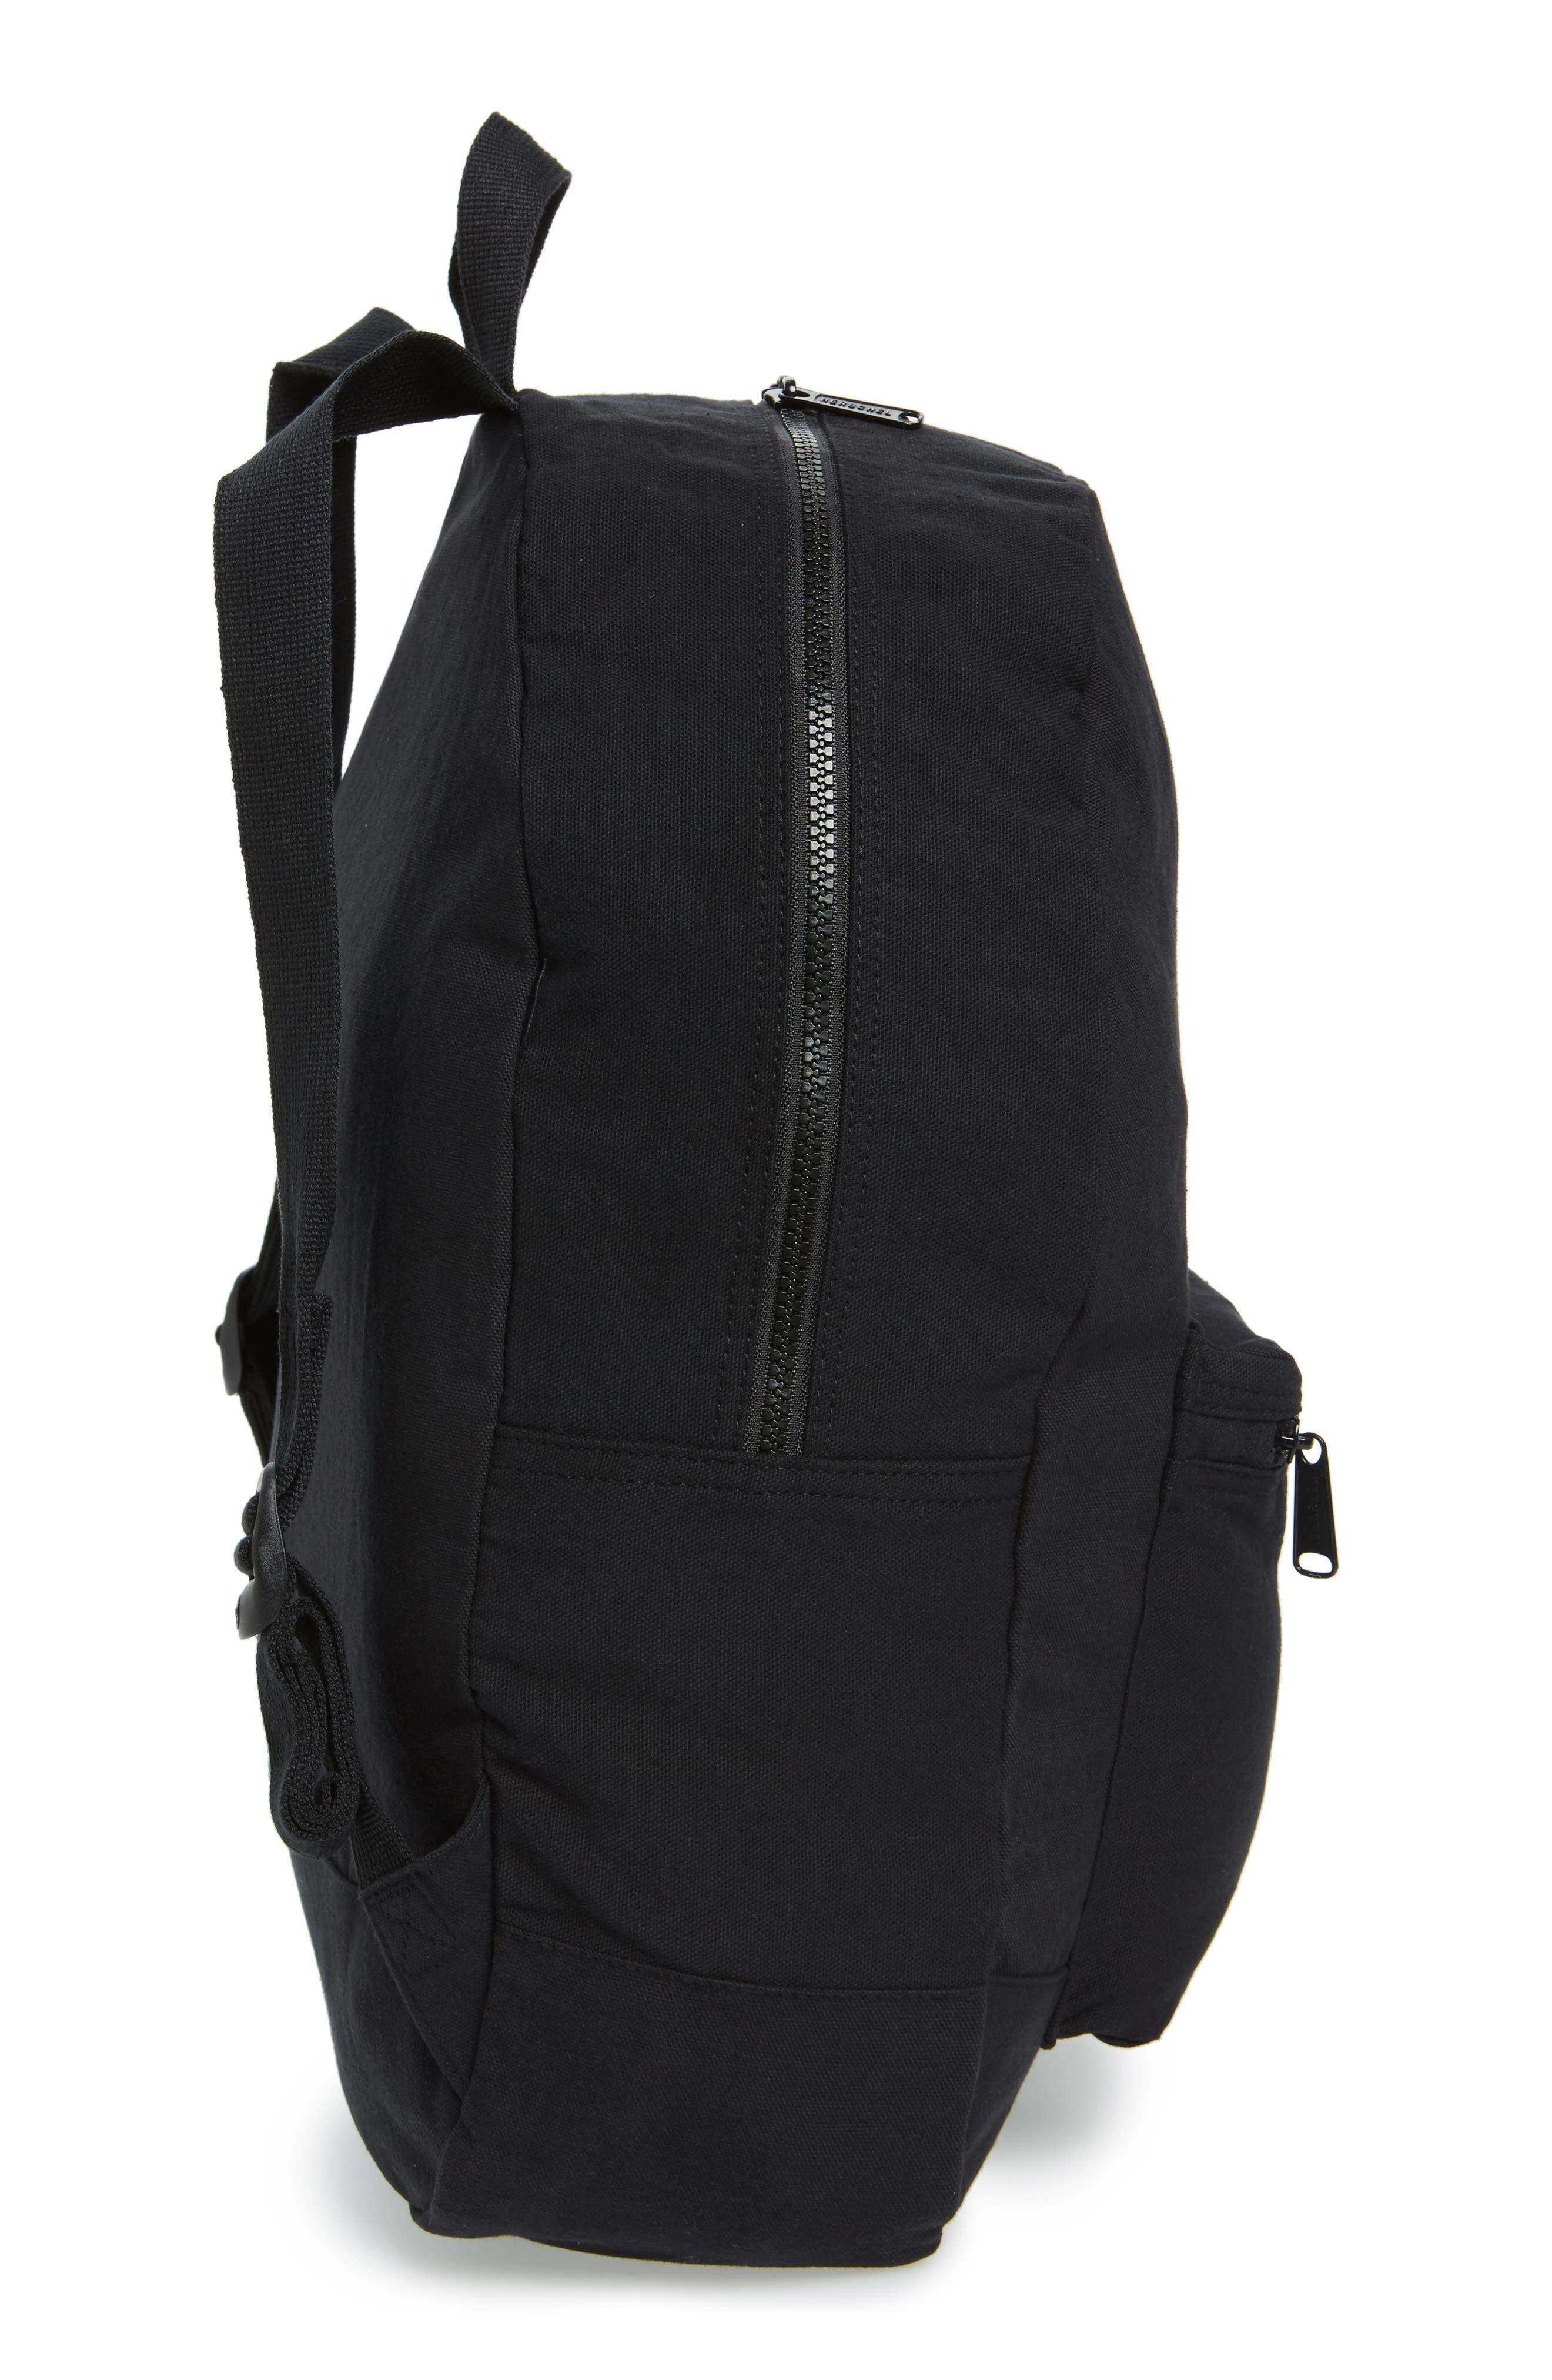 Cotton Casuals Daypack Backpack,                             Alternate thumbnail 40, color,